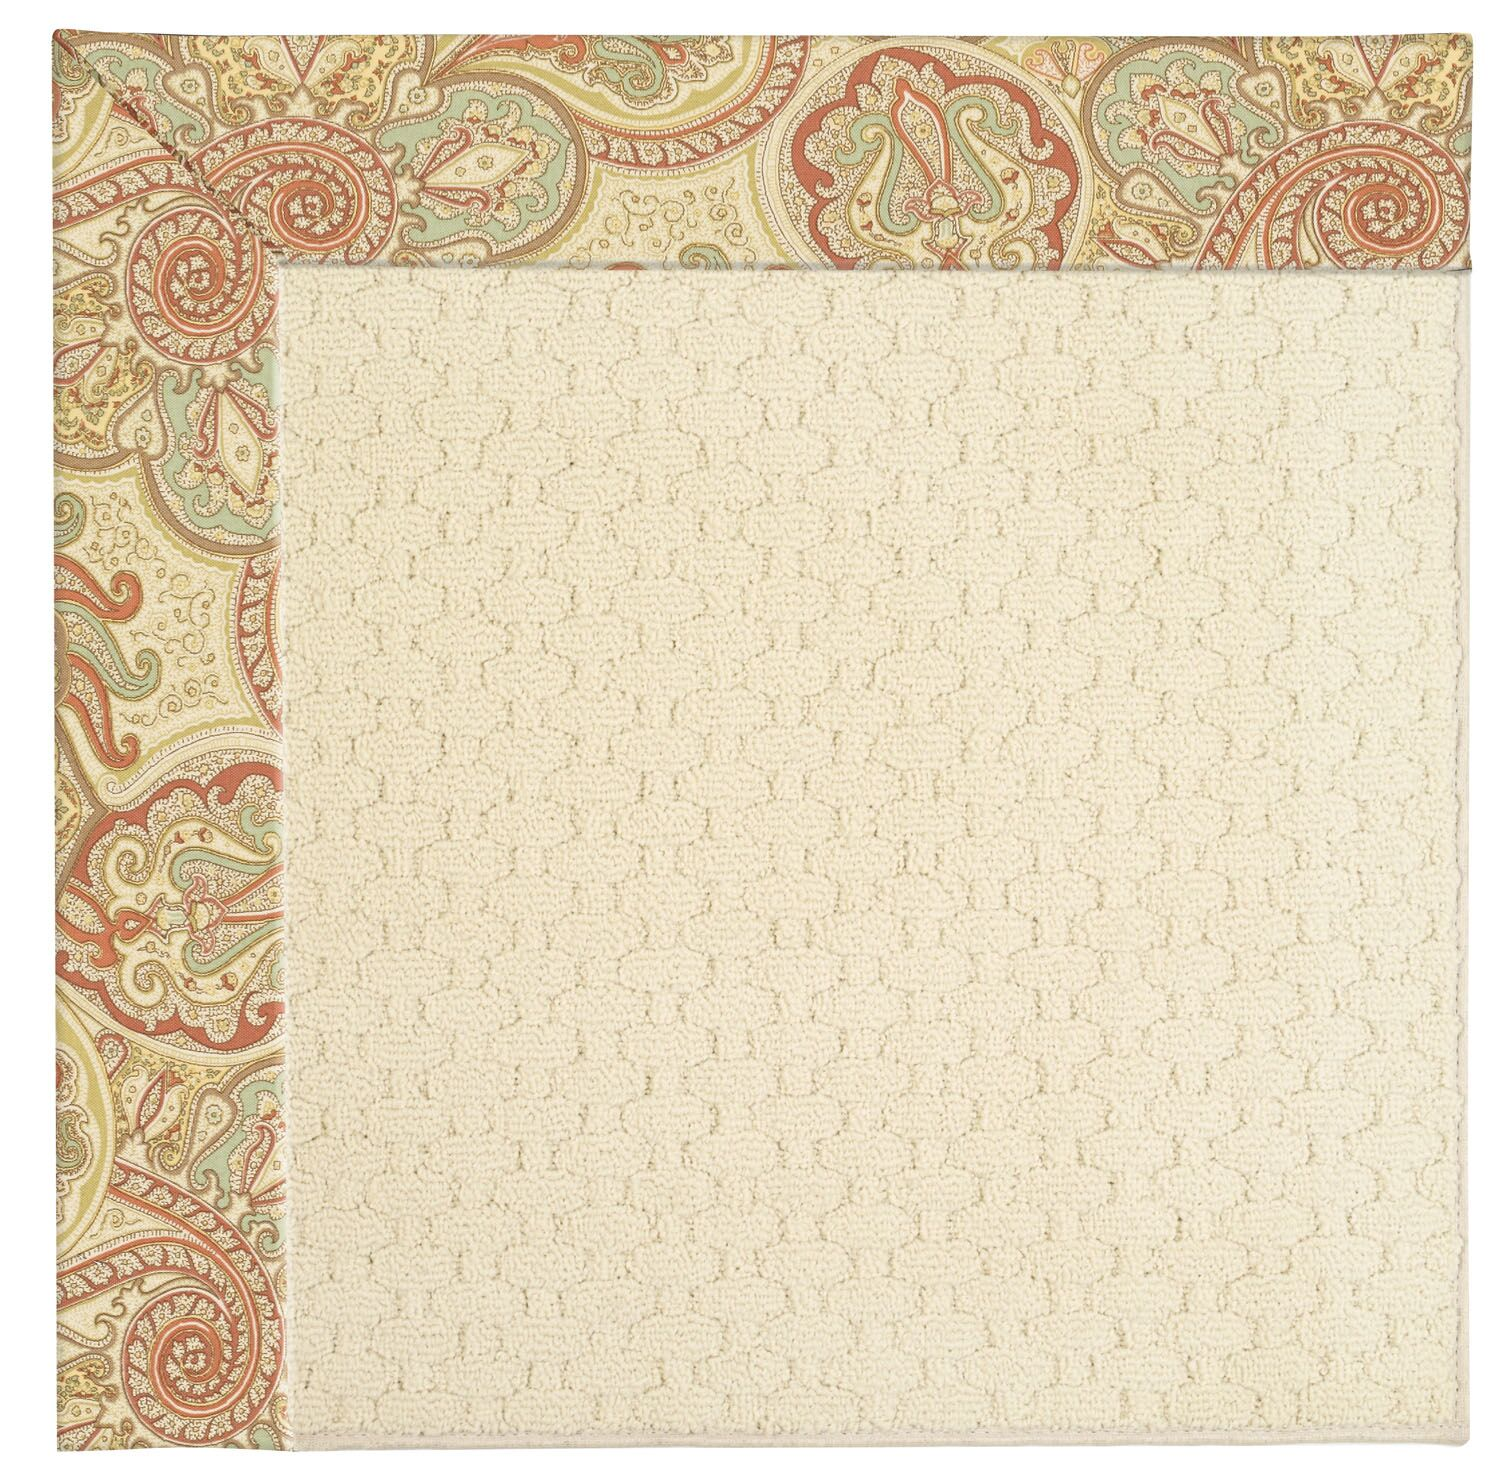 Lisle Beige Indoor/Outdoor Area Rug Rug Size: Rectangle 8' x 10'